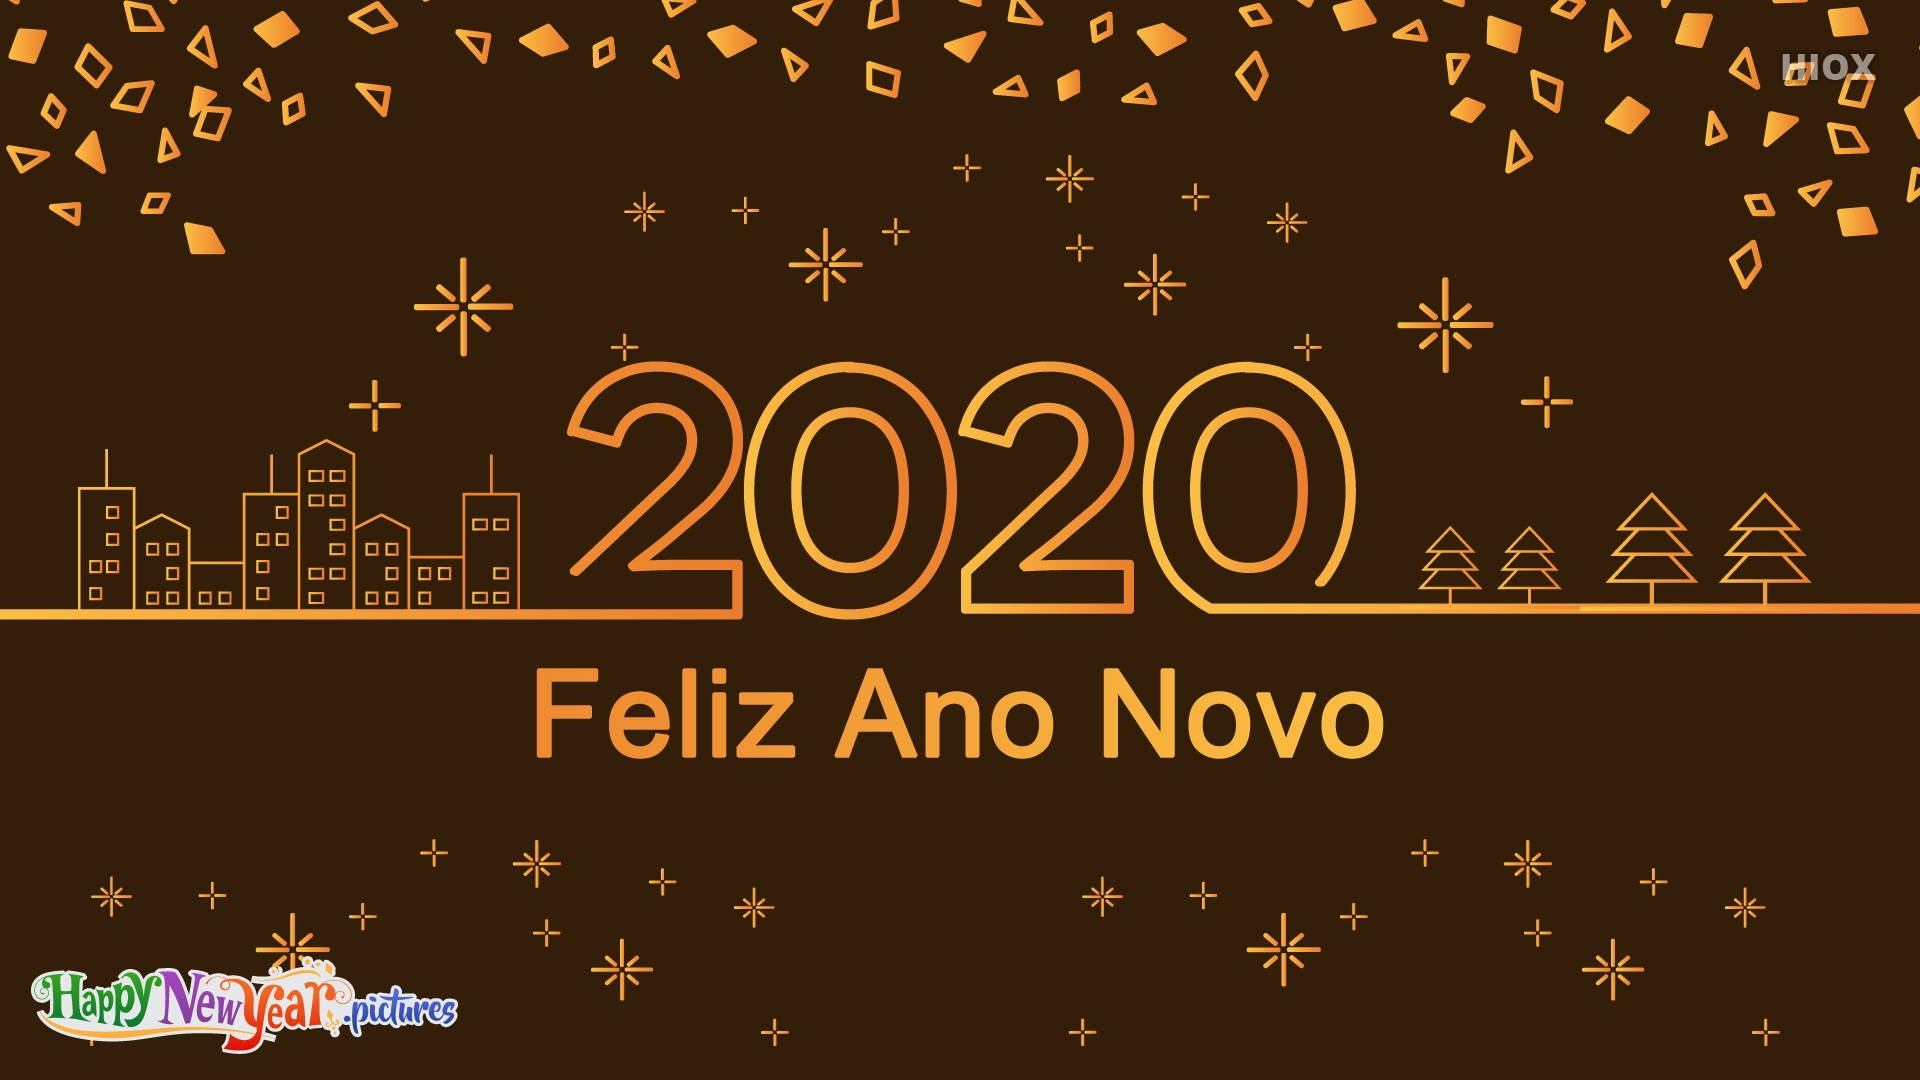 Happy New Year 2020 Dear Portuguese Friends